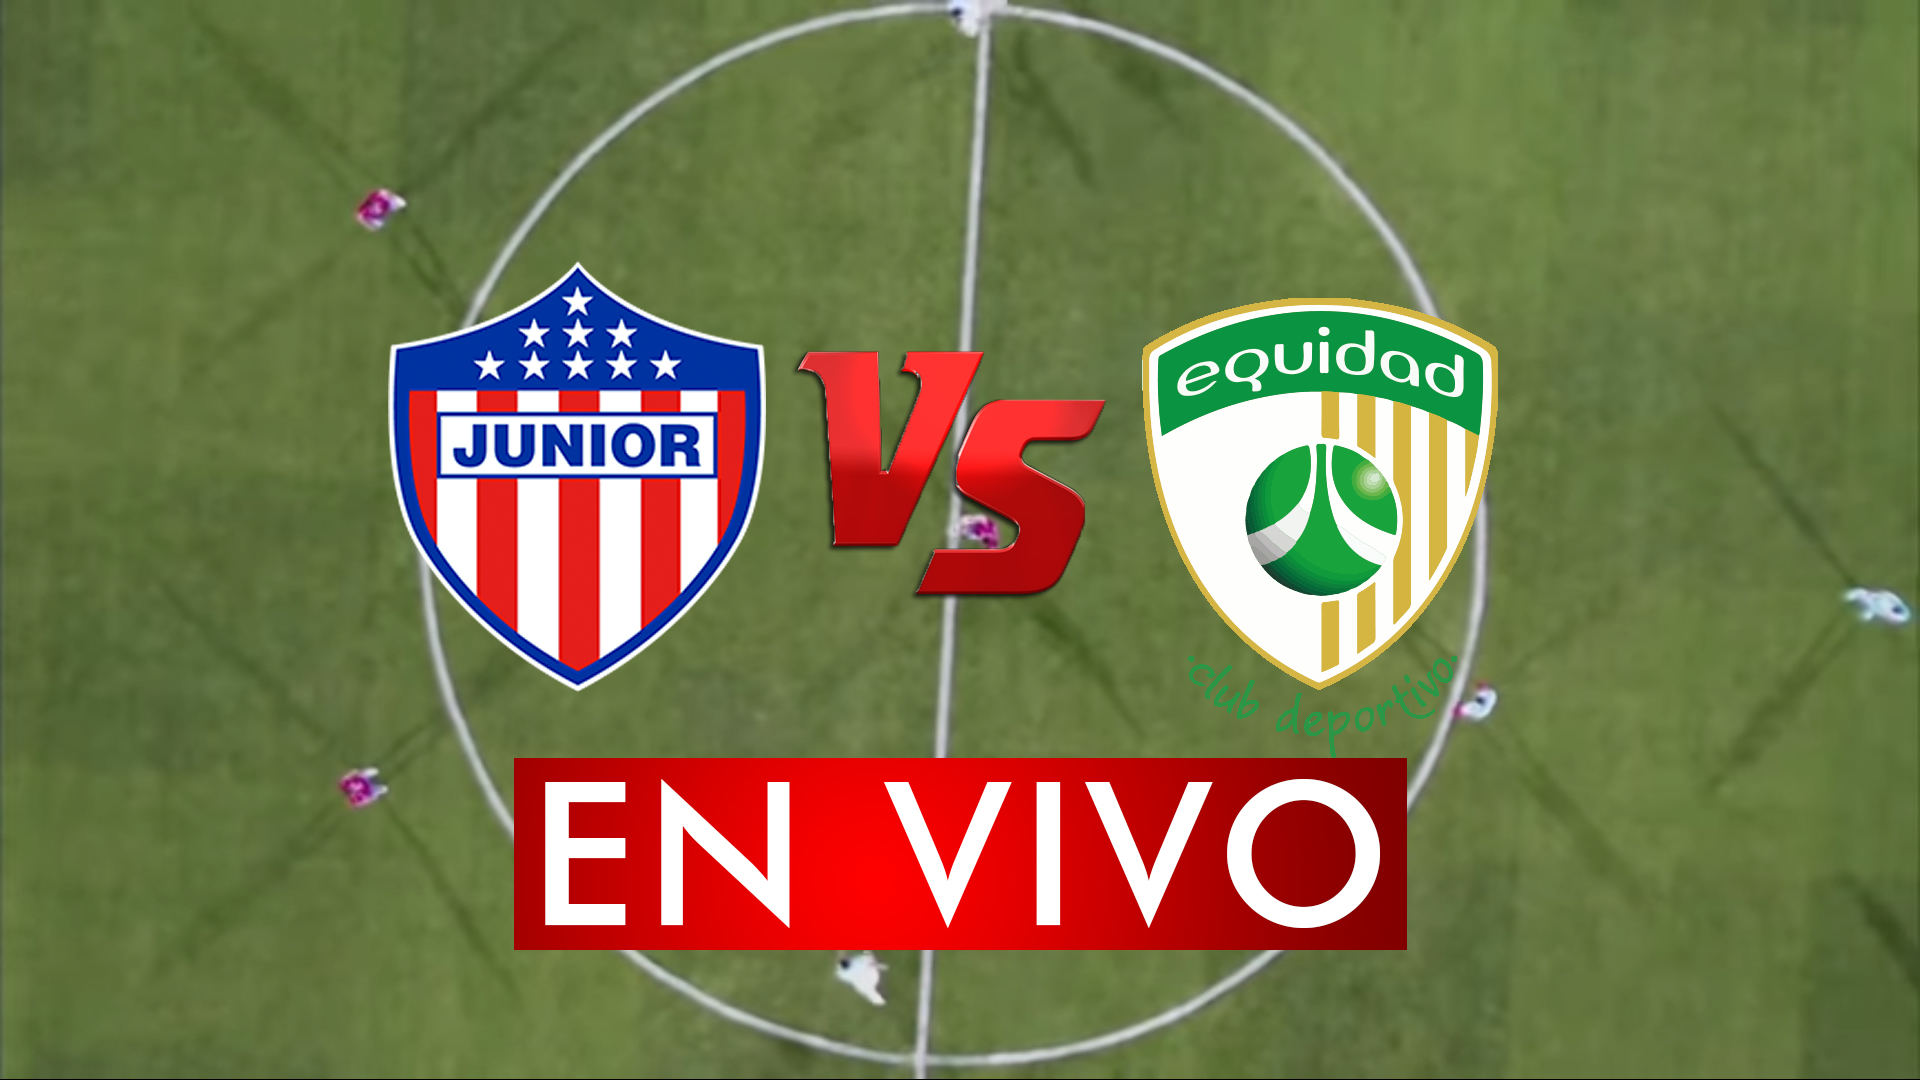 junior_vs_equidad_en_vivo_online_liga_betplay